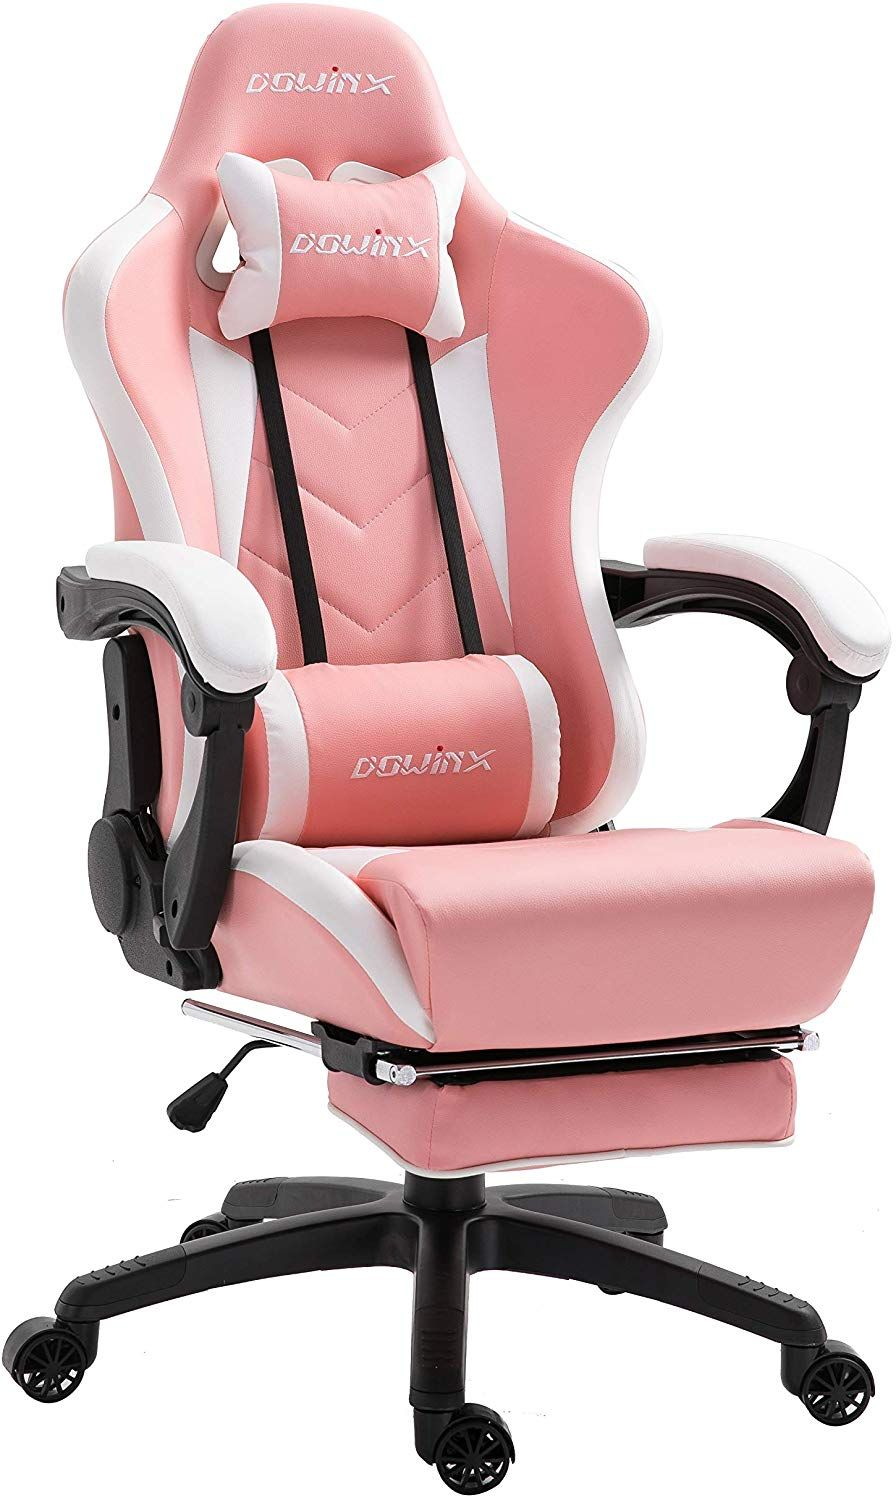 Dowinx Gaming Chair Ergonomic Super Cute Comfy And Decent